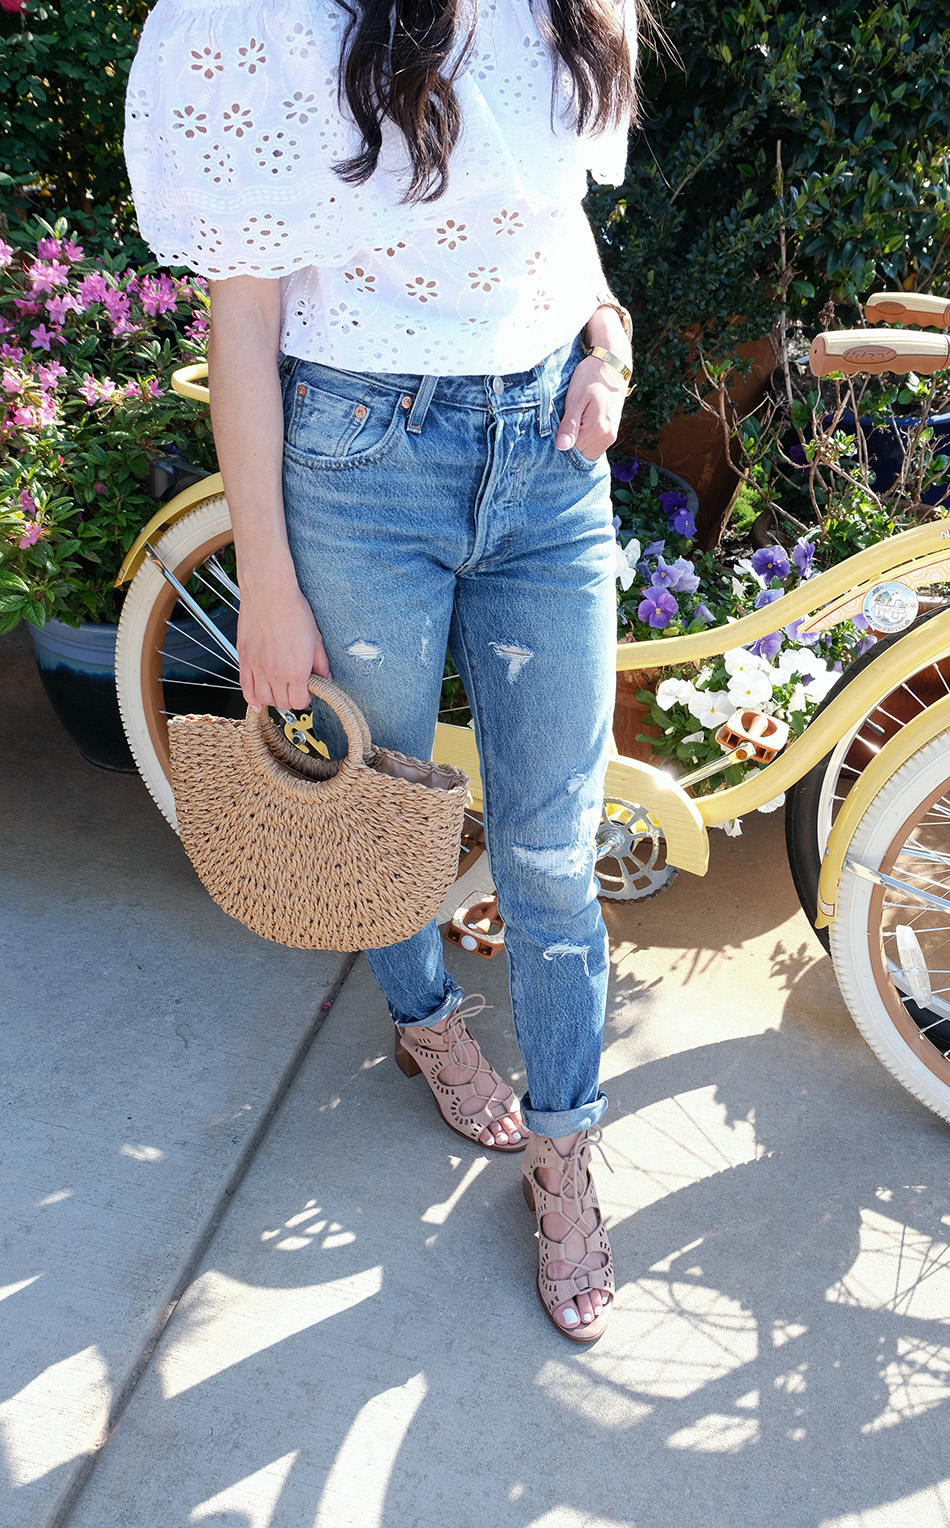 how to style levis 501 jeans | straw bag outfits | white off the shoulder top easy outfit